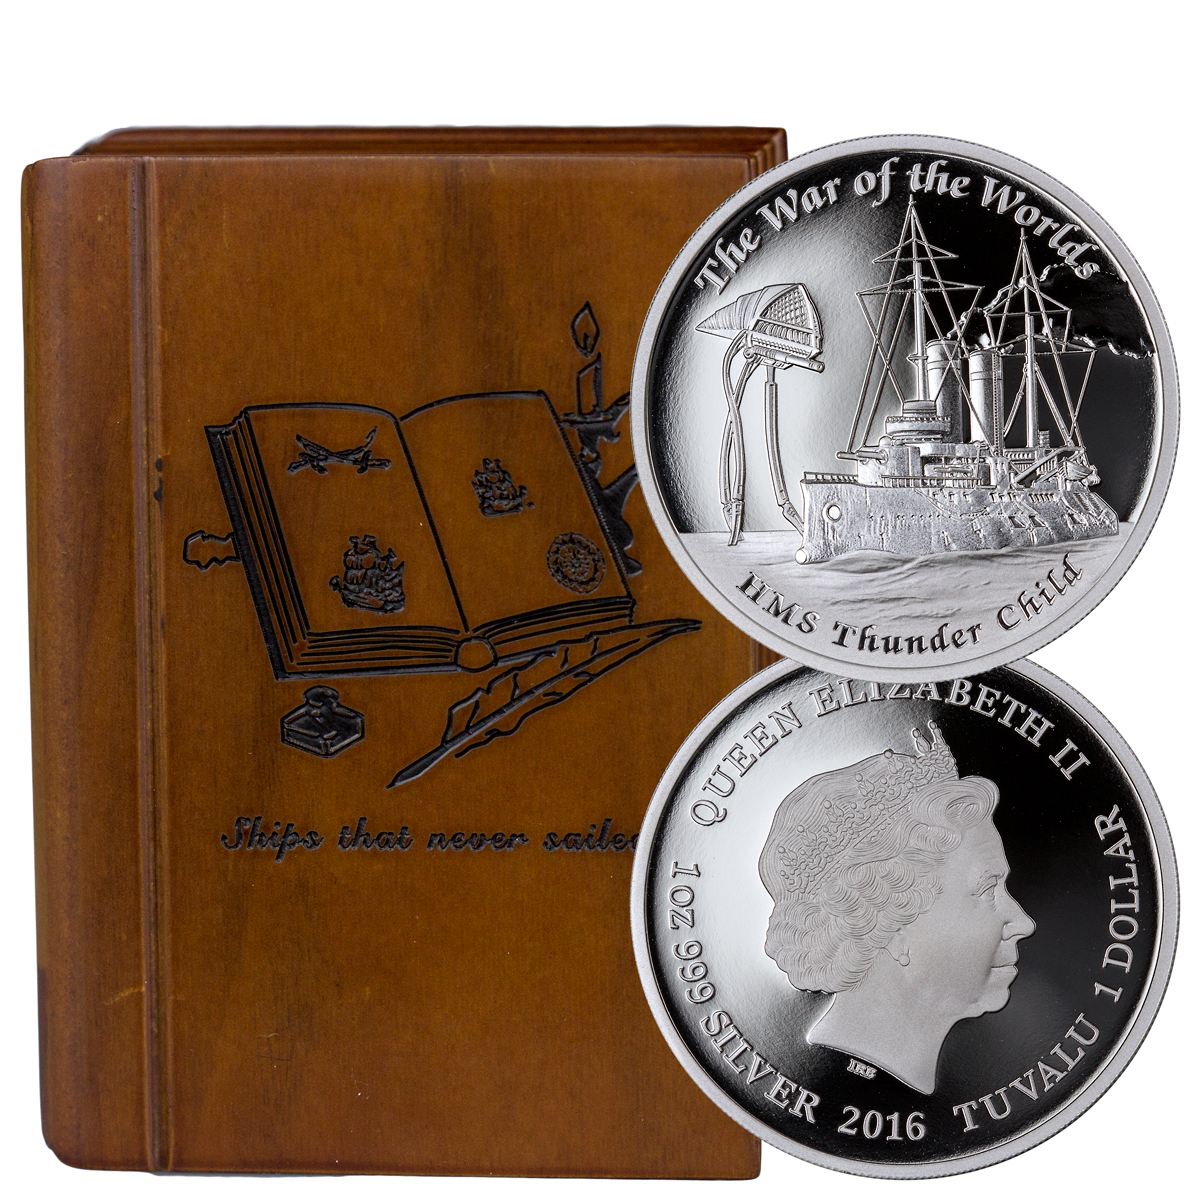 2016 Tuvalu $1 1 oz. Proof Silver Famous Ships That Never Sailed - HMS Thunder Child from The War of the Worlds - GEM Proof (Original Mint Packaging)